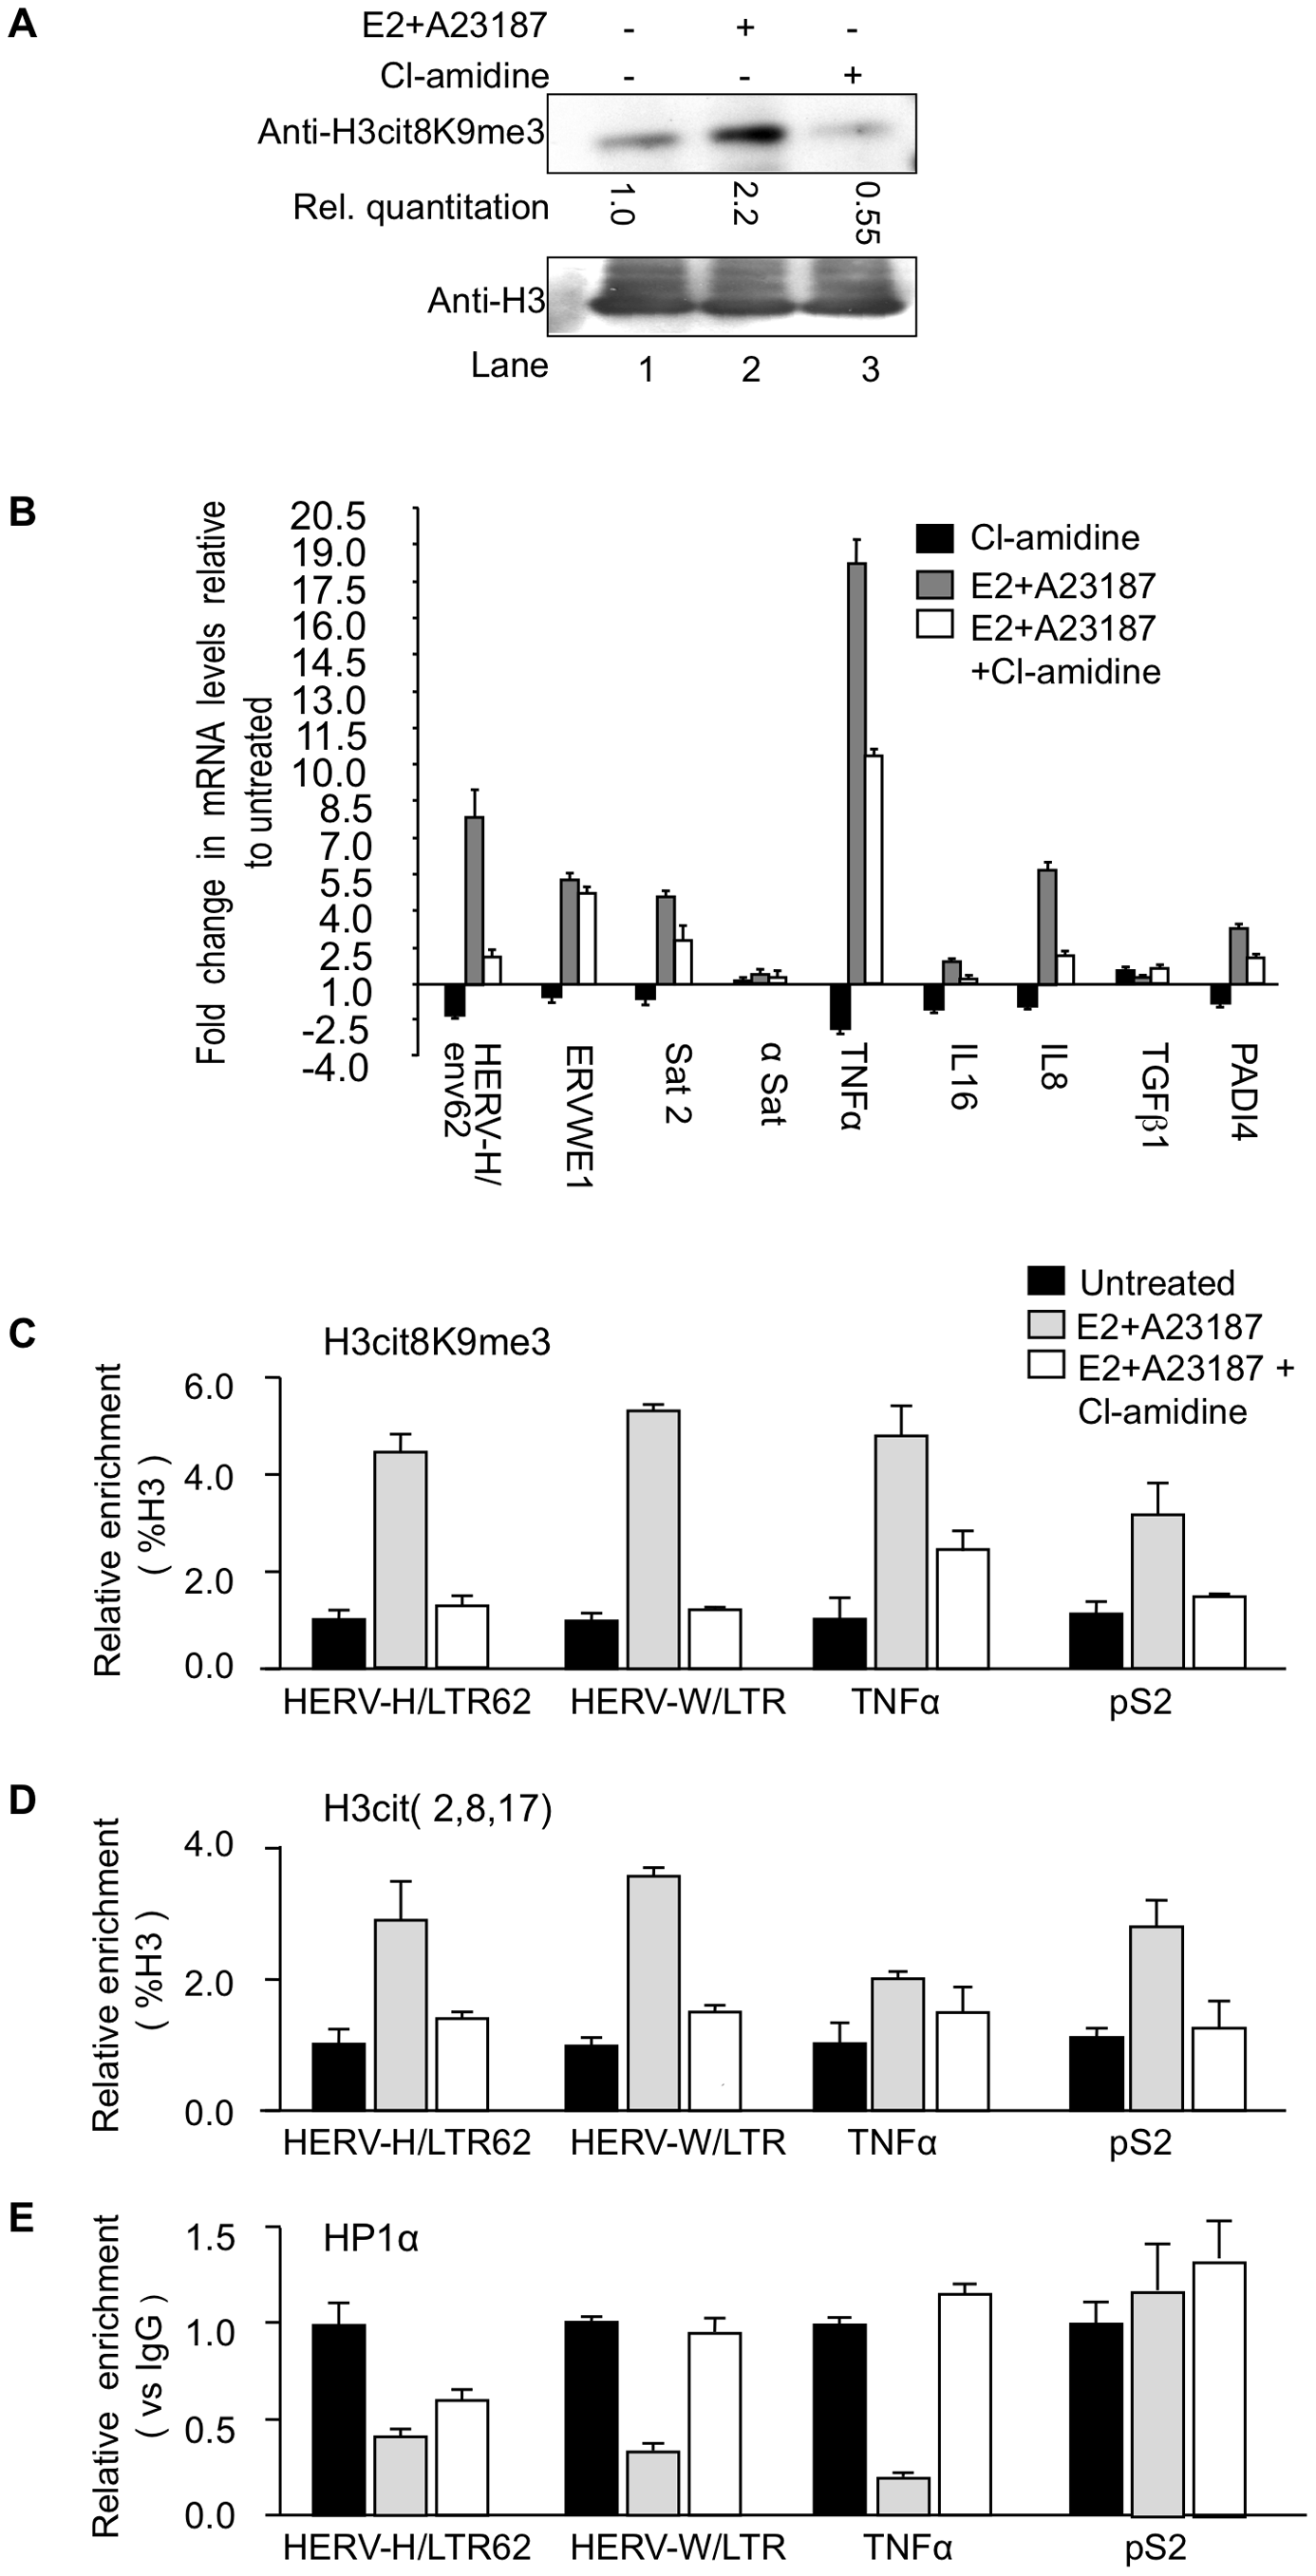 PADI4 activity controls HP1α occupancy and histone H3 citrullination at TNFα and HERV promoters.